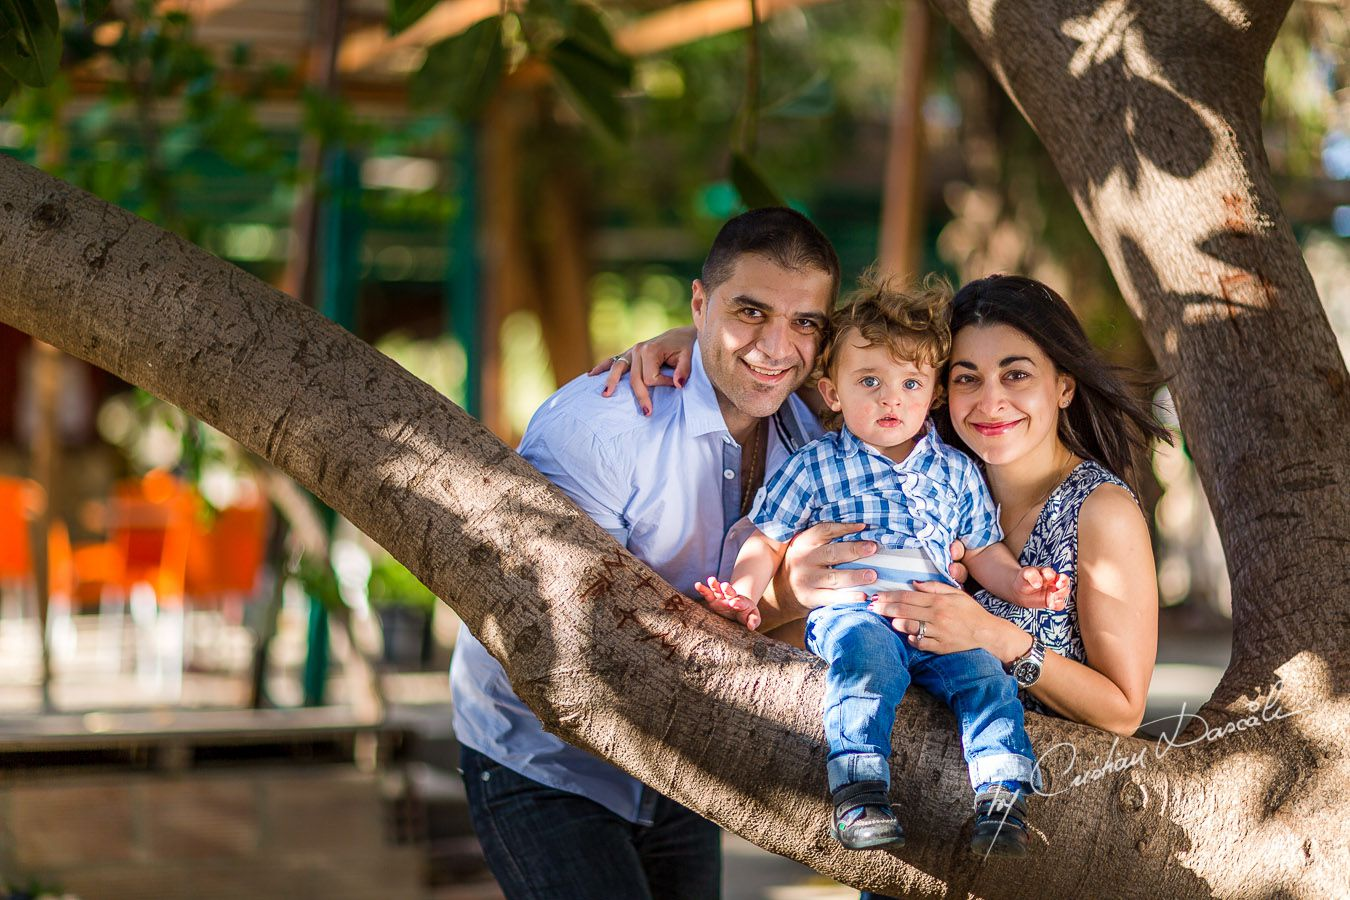 Maria, George & Harry - Family photo shoot near Curium Beach, Cyprus. Photographer: Cristian Dascalu